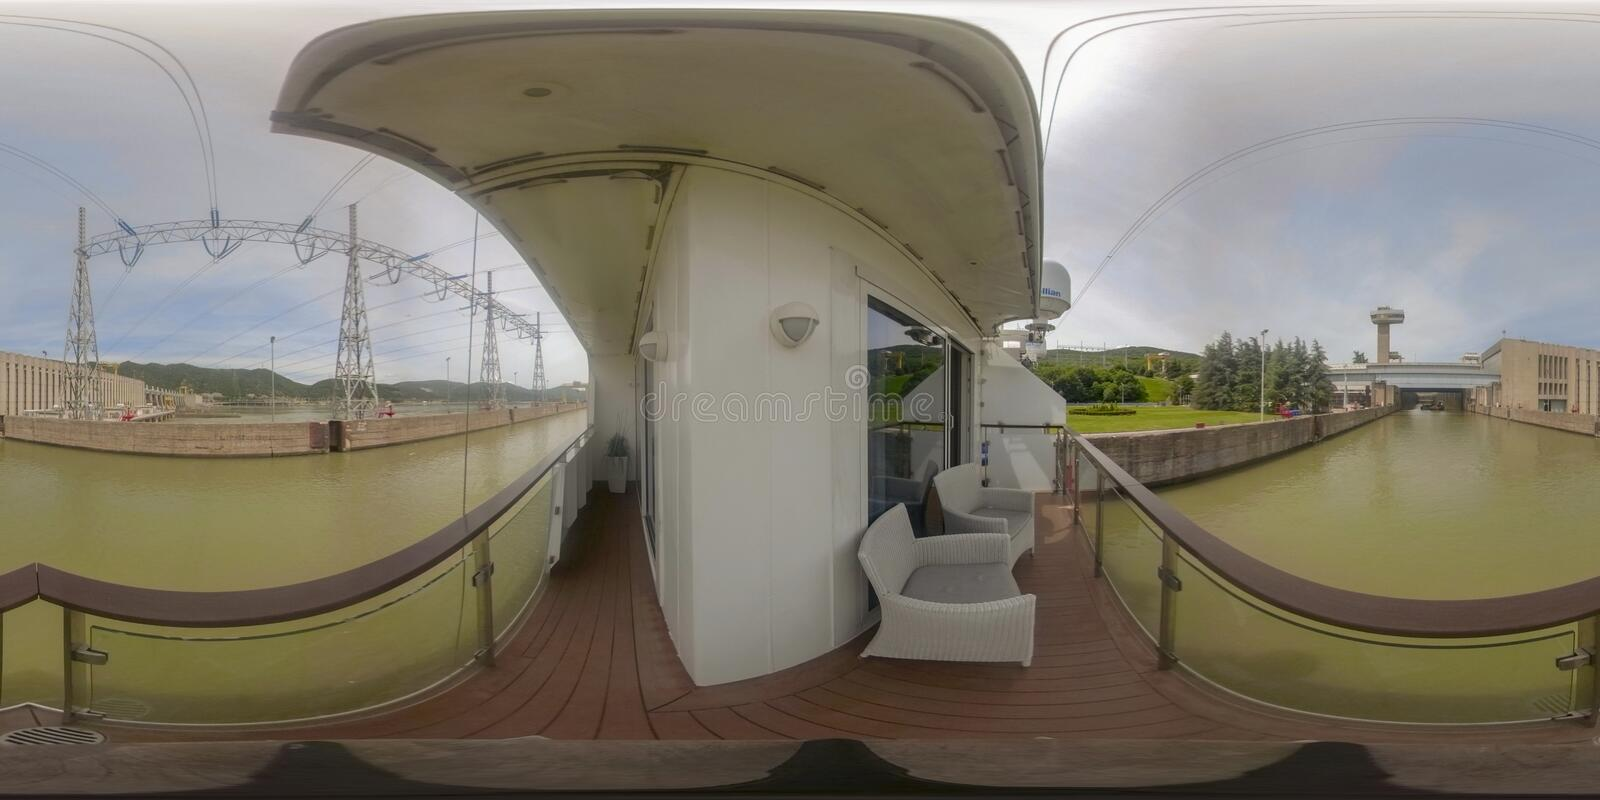 360VR Cruising through Iron Gate2 power plant. 360VR cruising on riverboat through the Iron Gate 2 hydroelectric power plant locks on the Danube River between stock image